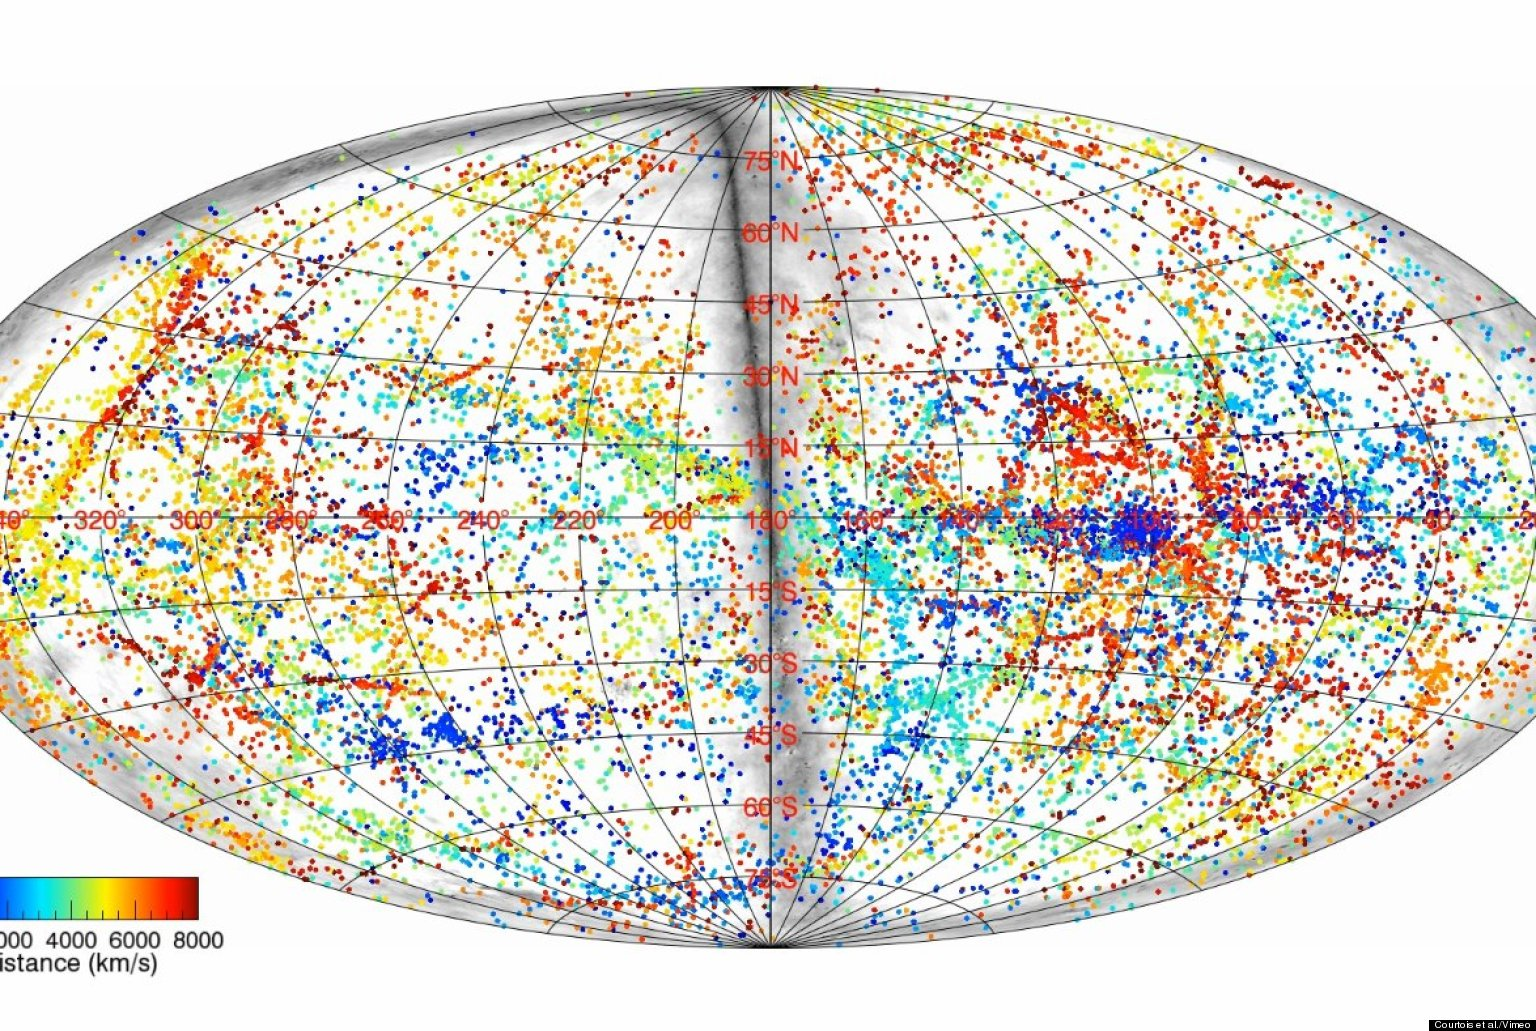 3D Map Of Universe Shows Positions Of Known Galaxies In